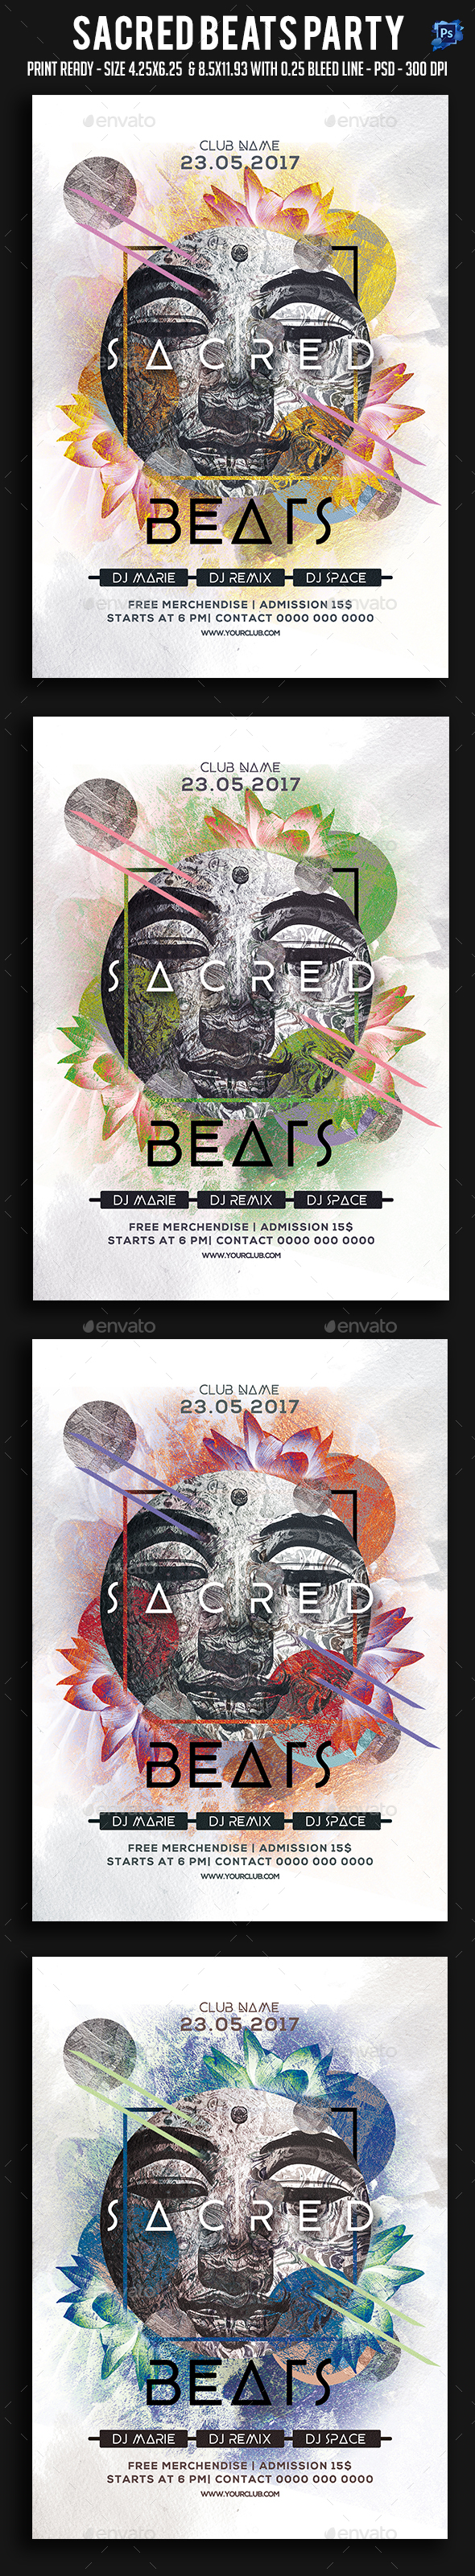 Sacred Beats Party Flyer - Clubs & Parties Events